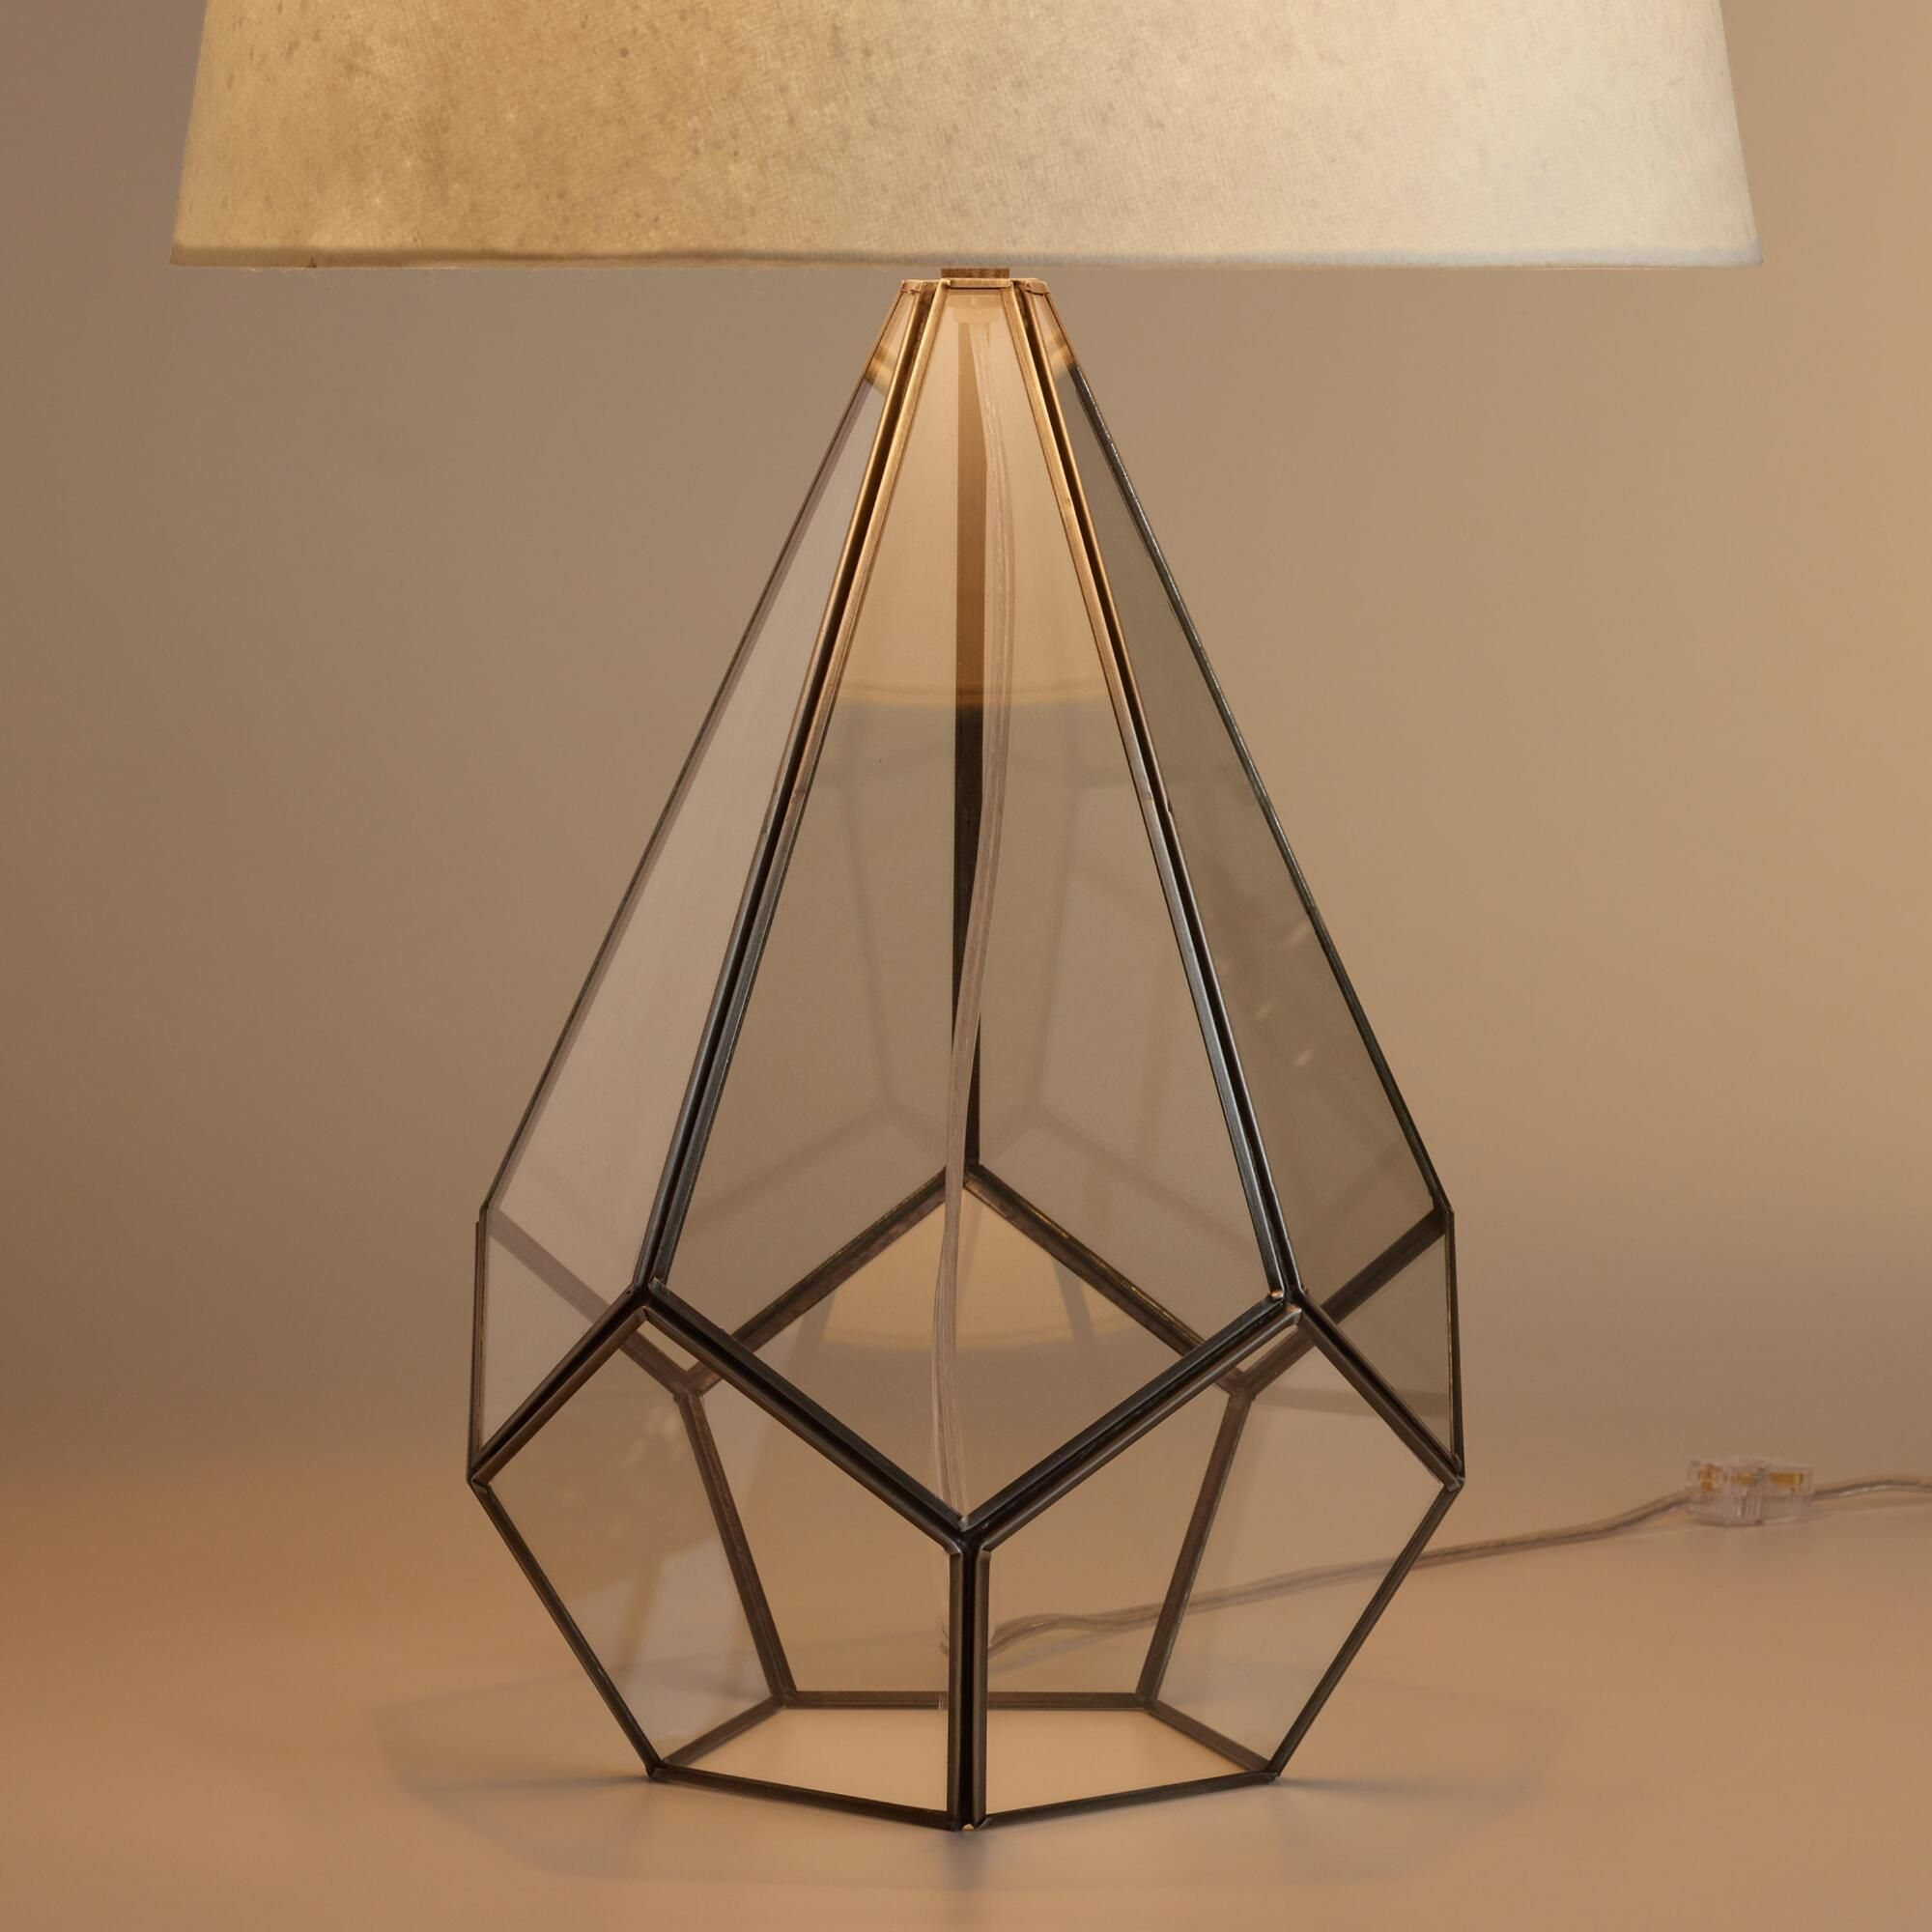 Intricately crafted of precision-cut glass fitted to an antique ... for Diy Geometric Lamp  181pct